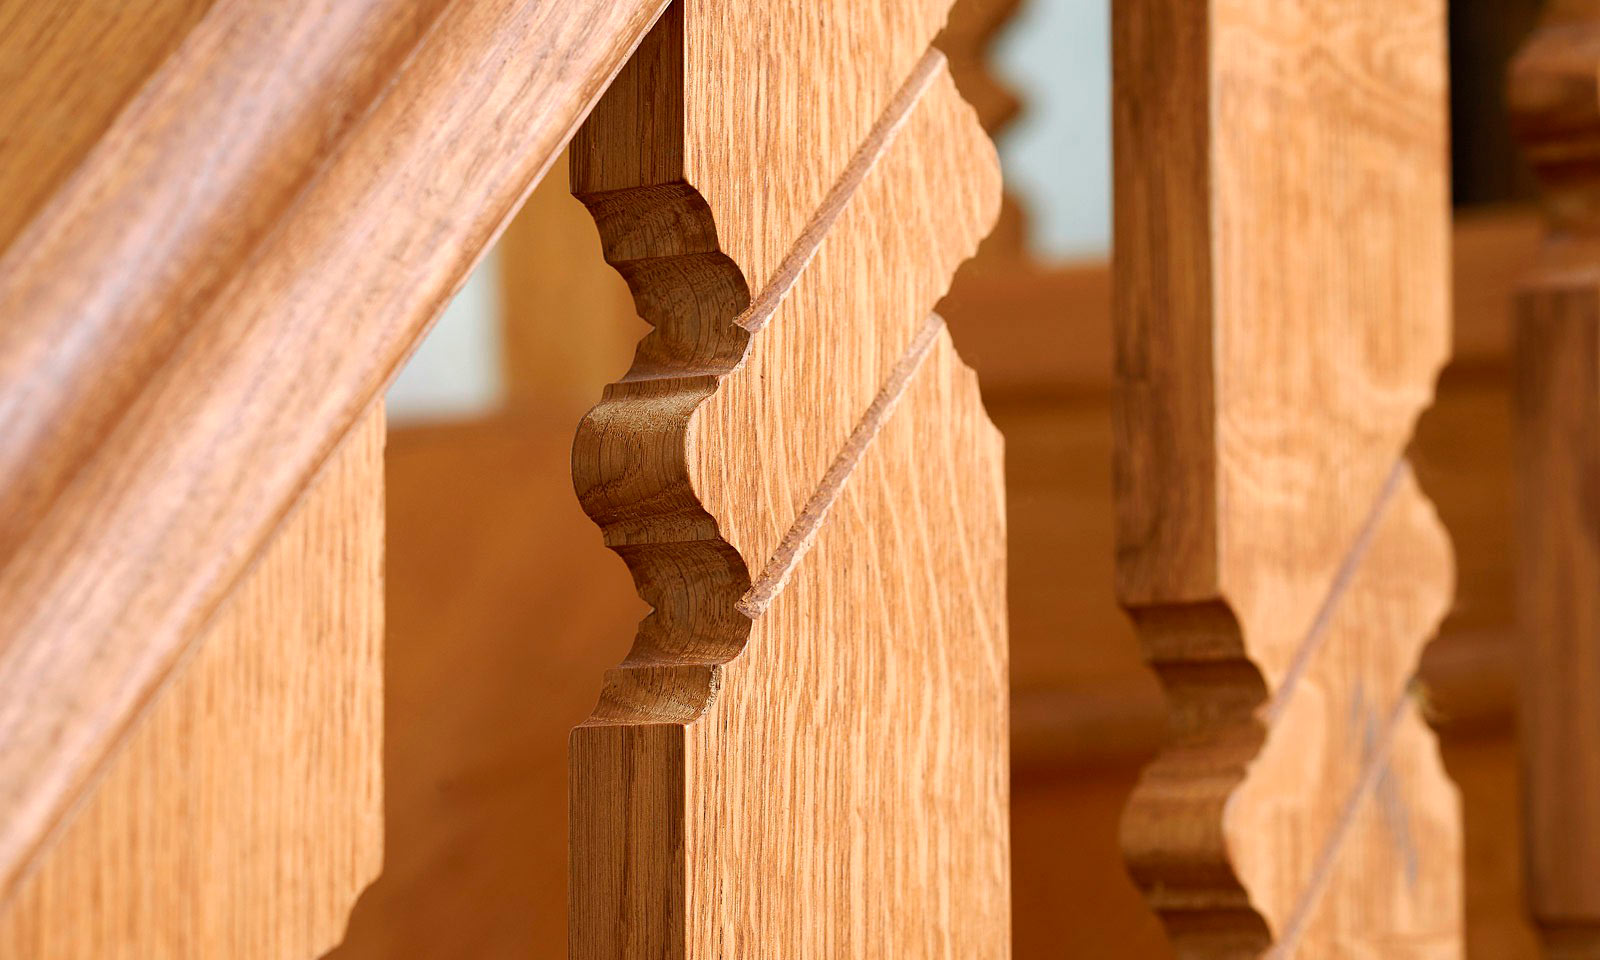 Gothic Staircase. Bespoke, custom made, hand-crafted, stairs, made using traditional wood-working techniques and manufactured out of solid European oak. Bespoke custom made joinery from Mounts Hill Woodcraft.